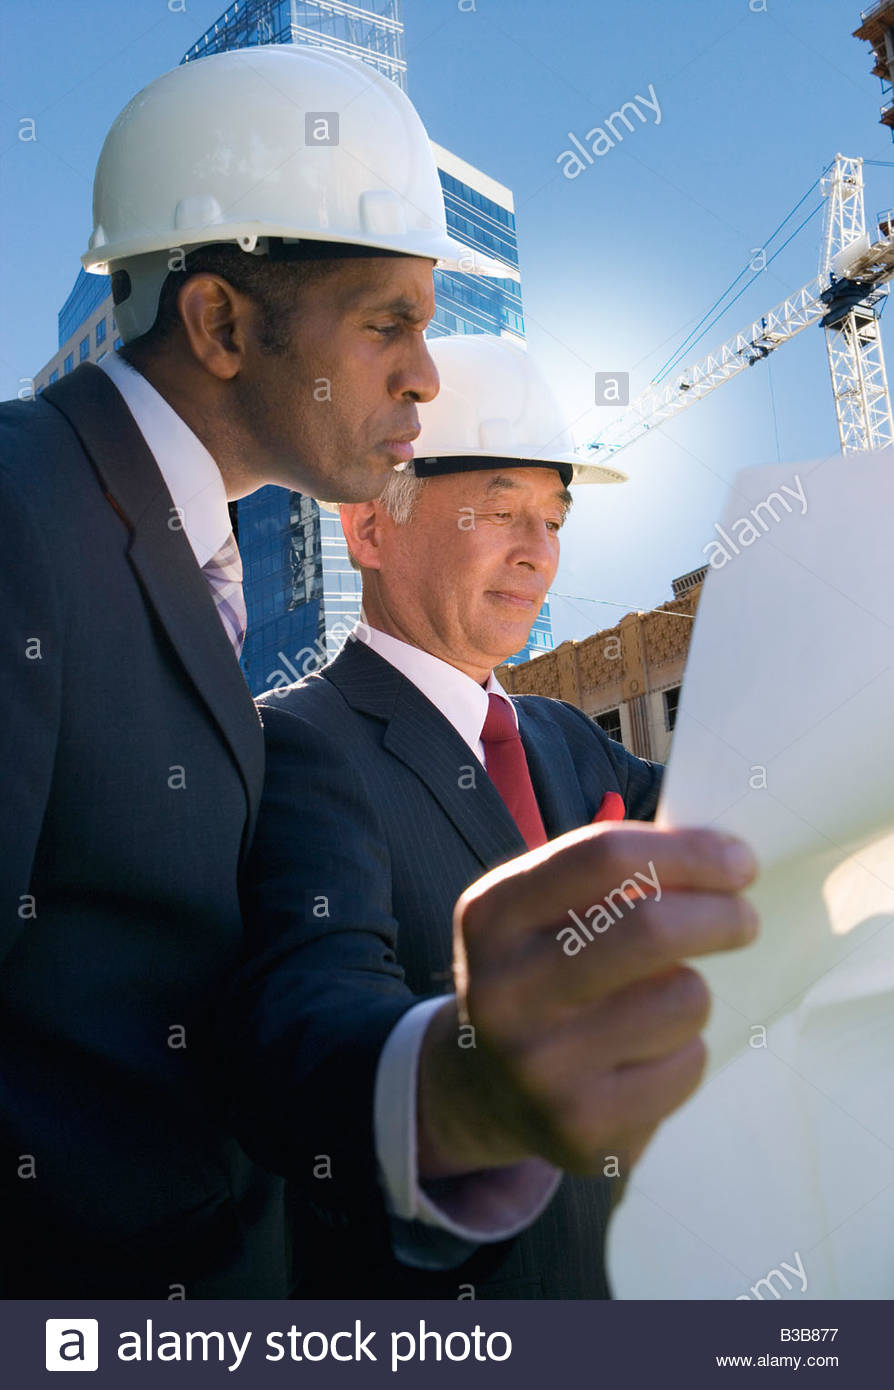 Businessman inspecting construction site - Stock Image